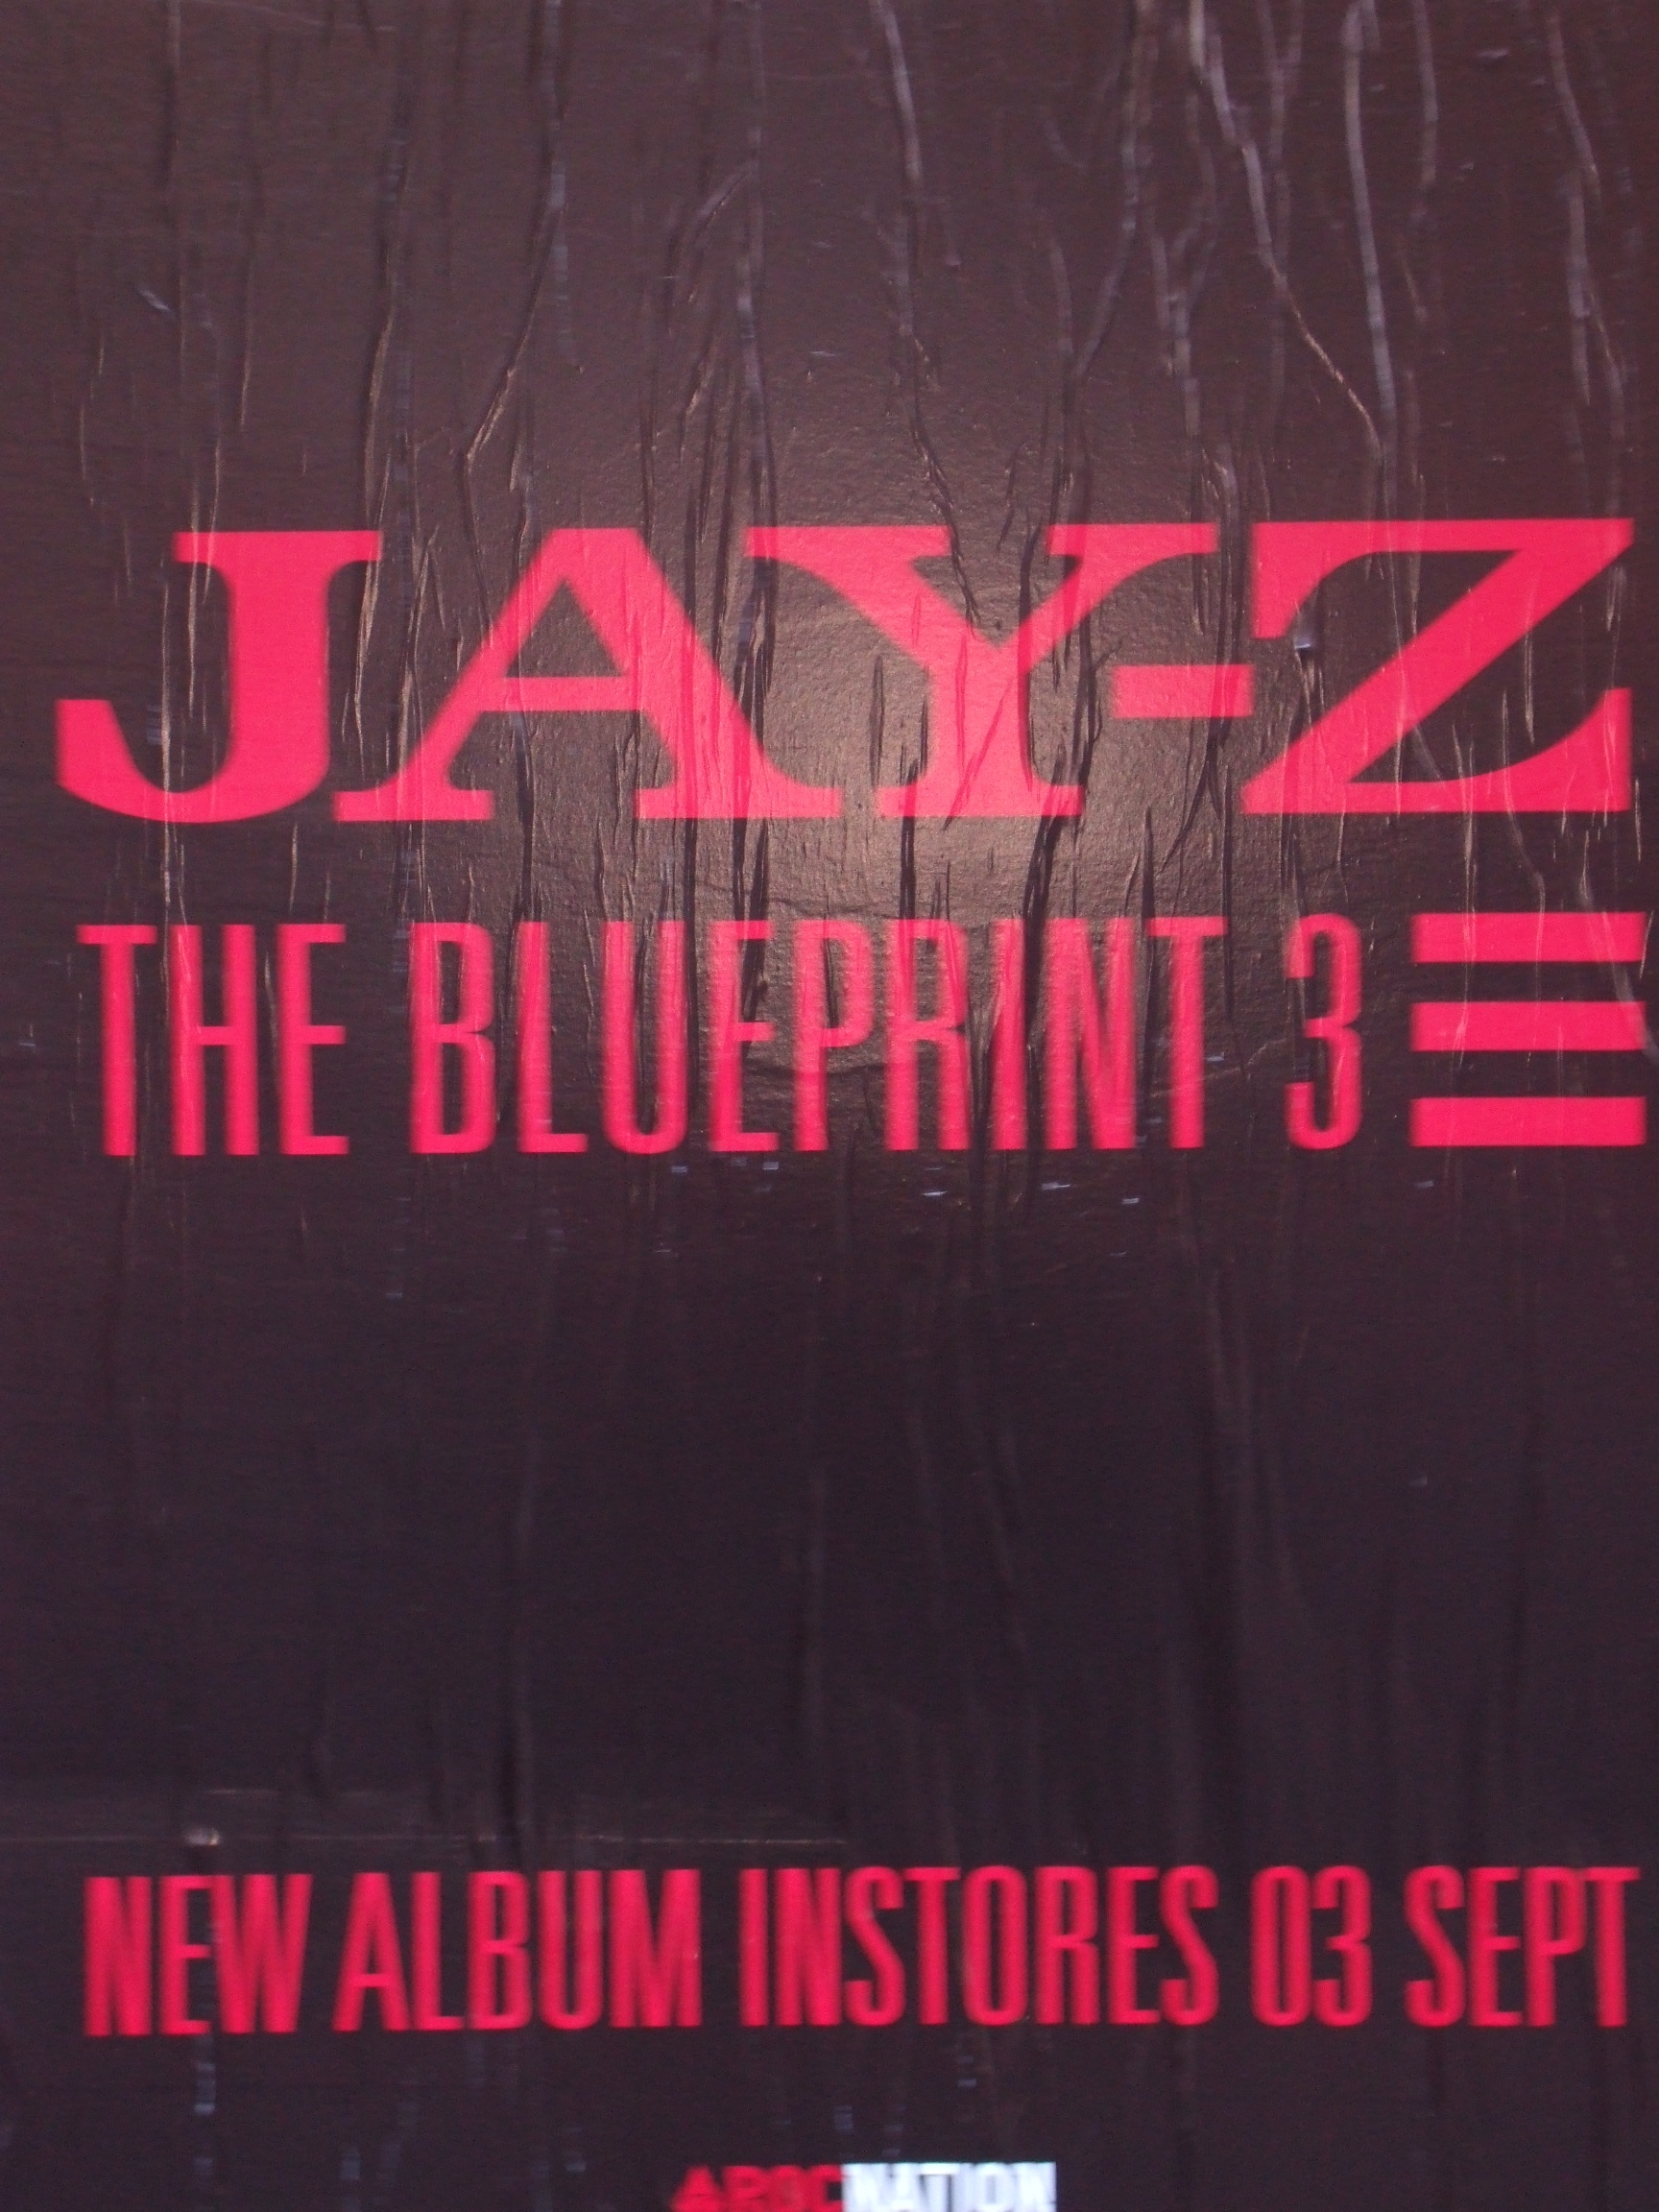 Dont believe everything you see blueprint 3 is not coming out blueprint 3 poster malvernweather